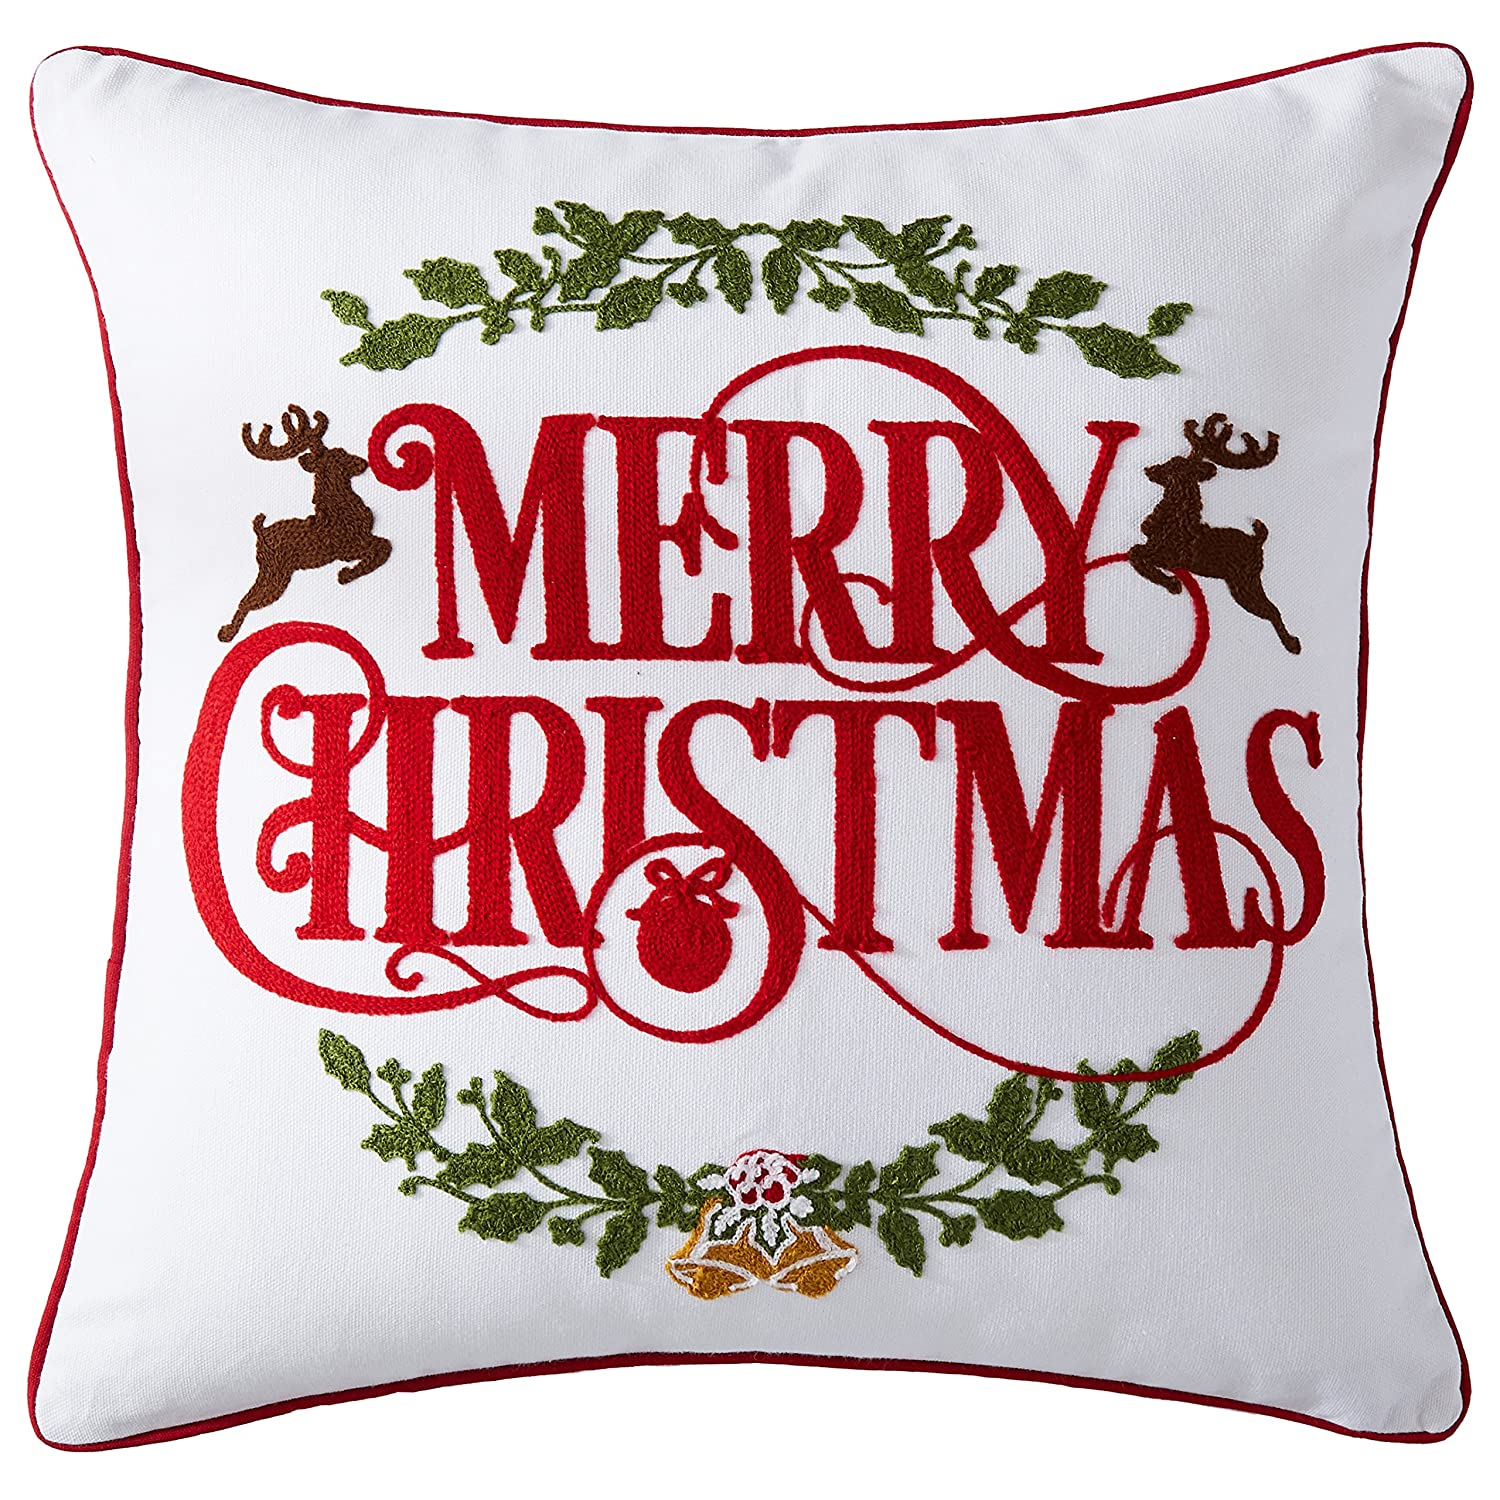 Cassiel Home Merry Christmas Decorations Throw Pillow Cover Christmas Wreath Embroidery Throw Pillow Cases Deco for Indoor Cushion Cover 18x18inch 45x45cm